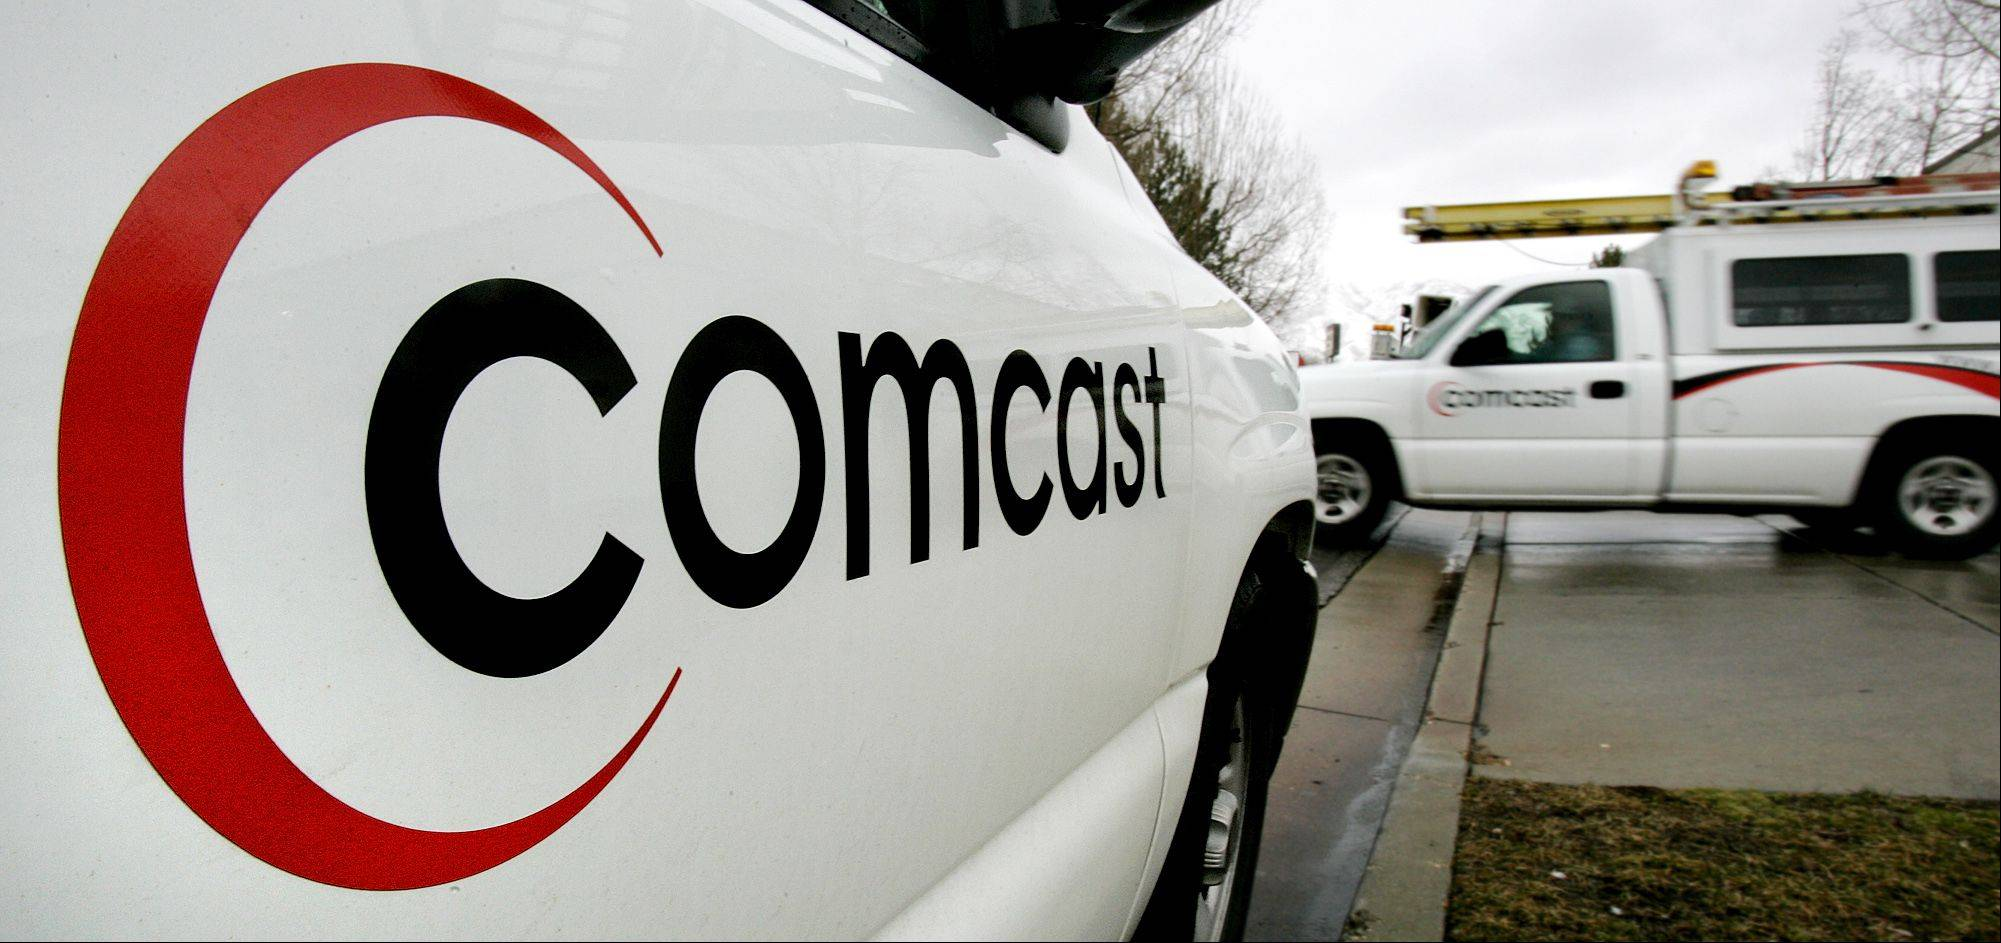 Digital adapters, which are needed for older analog TVs, used to be free from Comcast but now are $1.99 a month apiece.